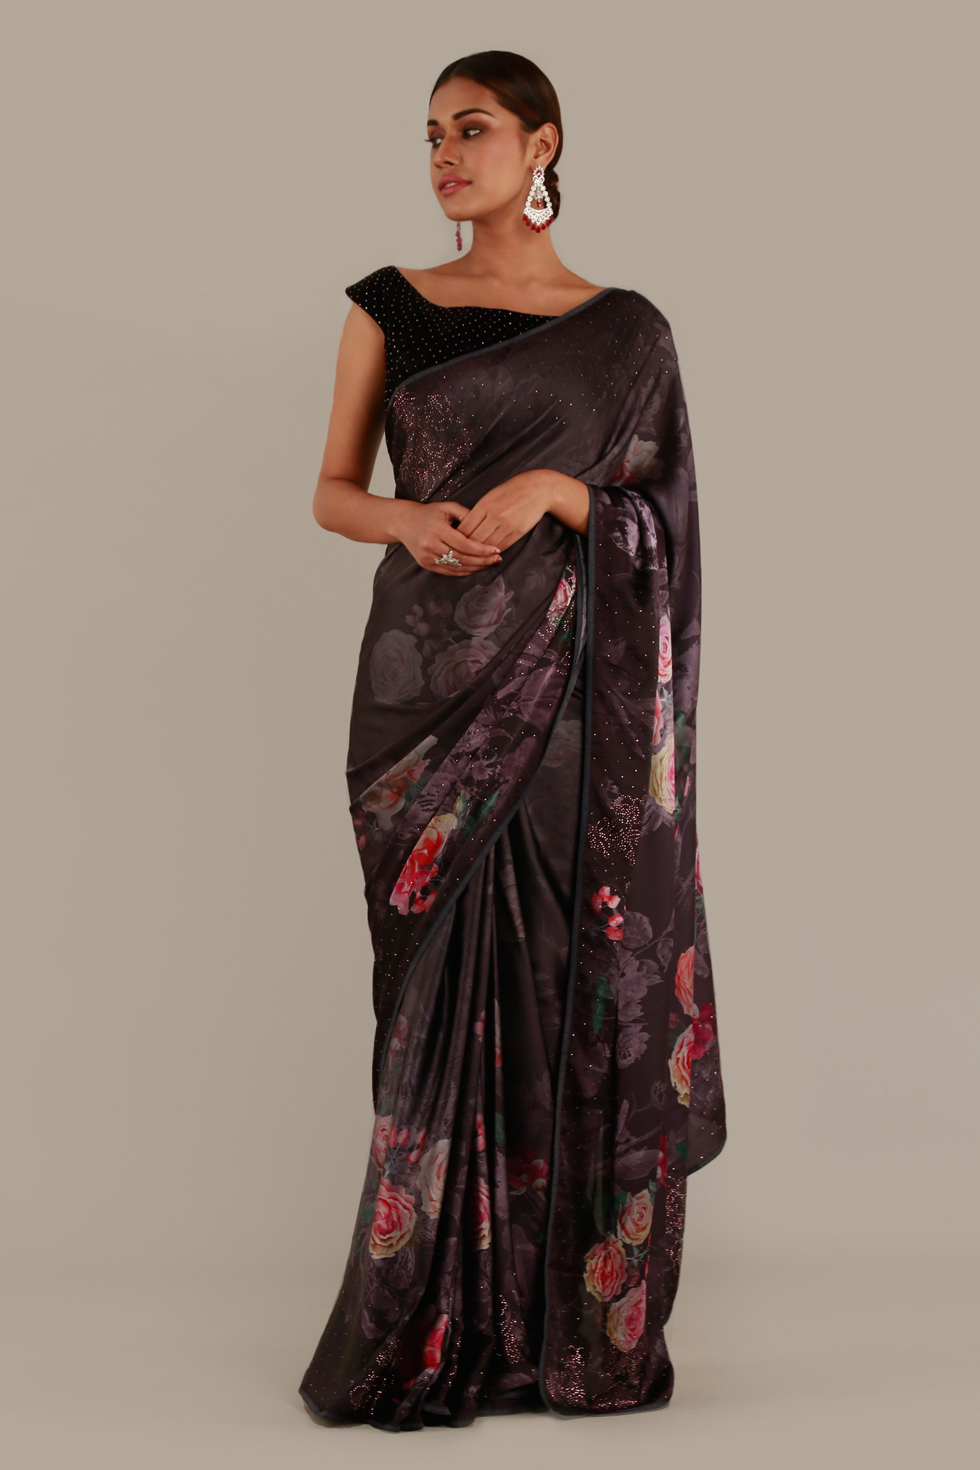 Wine burgundy classic saree with floral print and black choli with cut out back